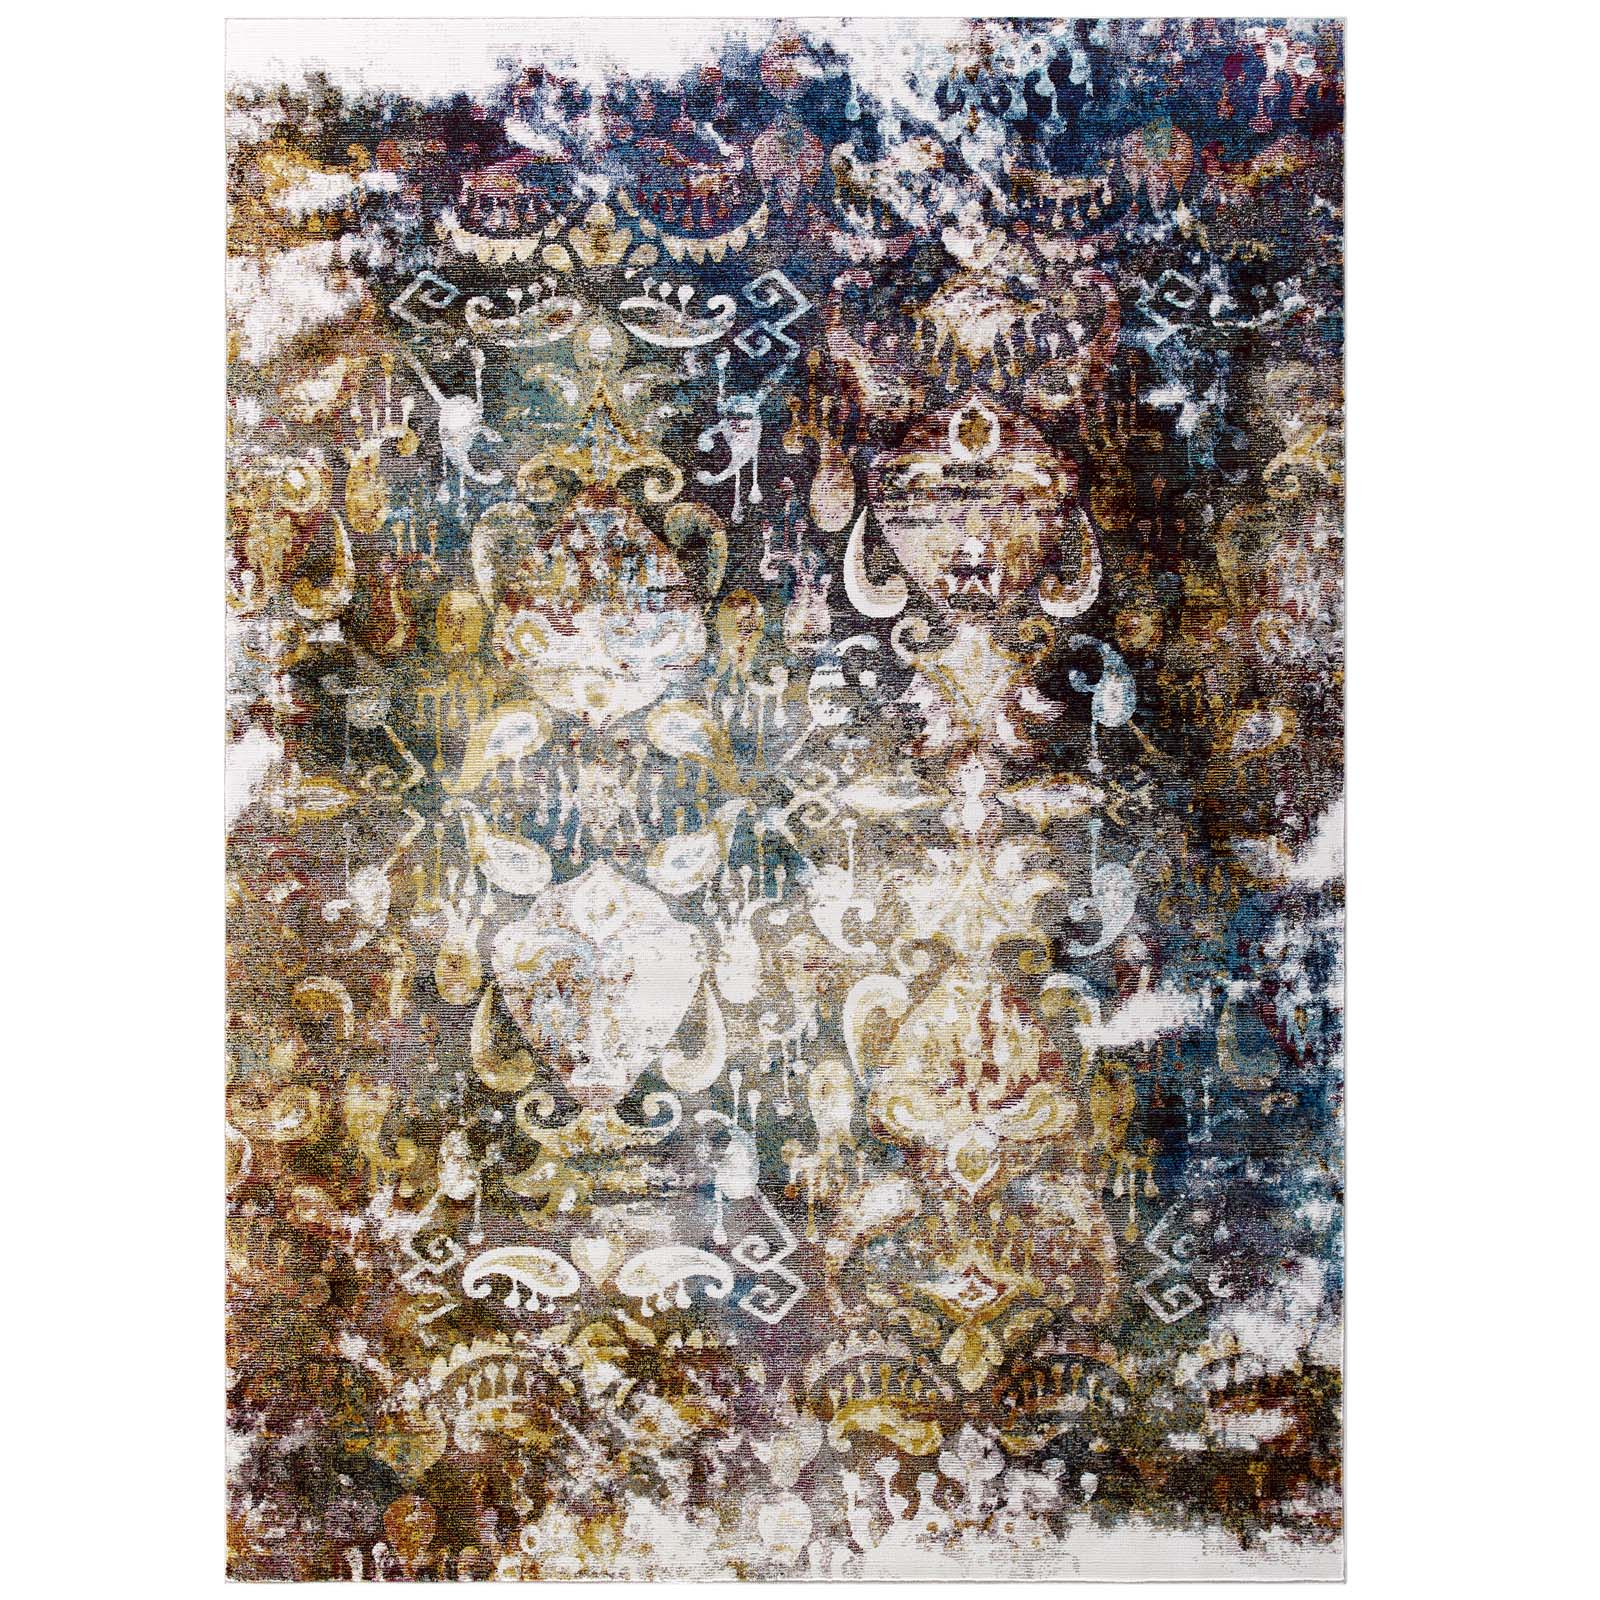 terrific colorful living room rug | Modern Contemporary Urban Living Lounge Room Area Rug ...